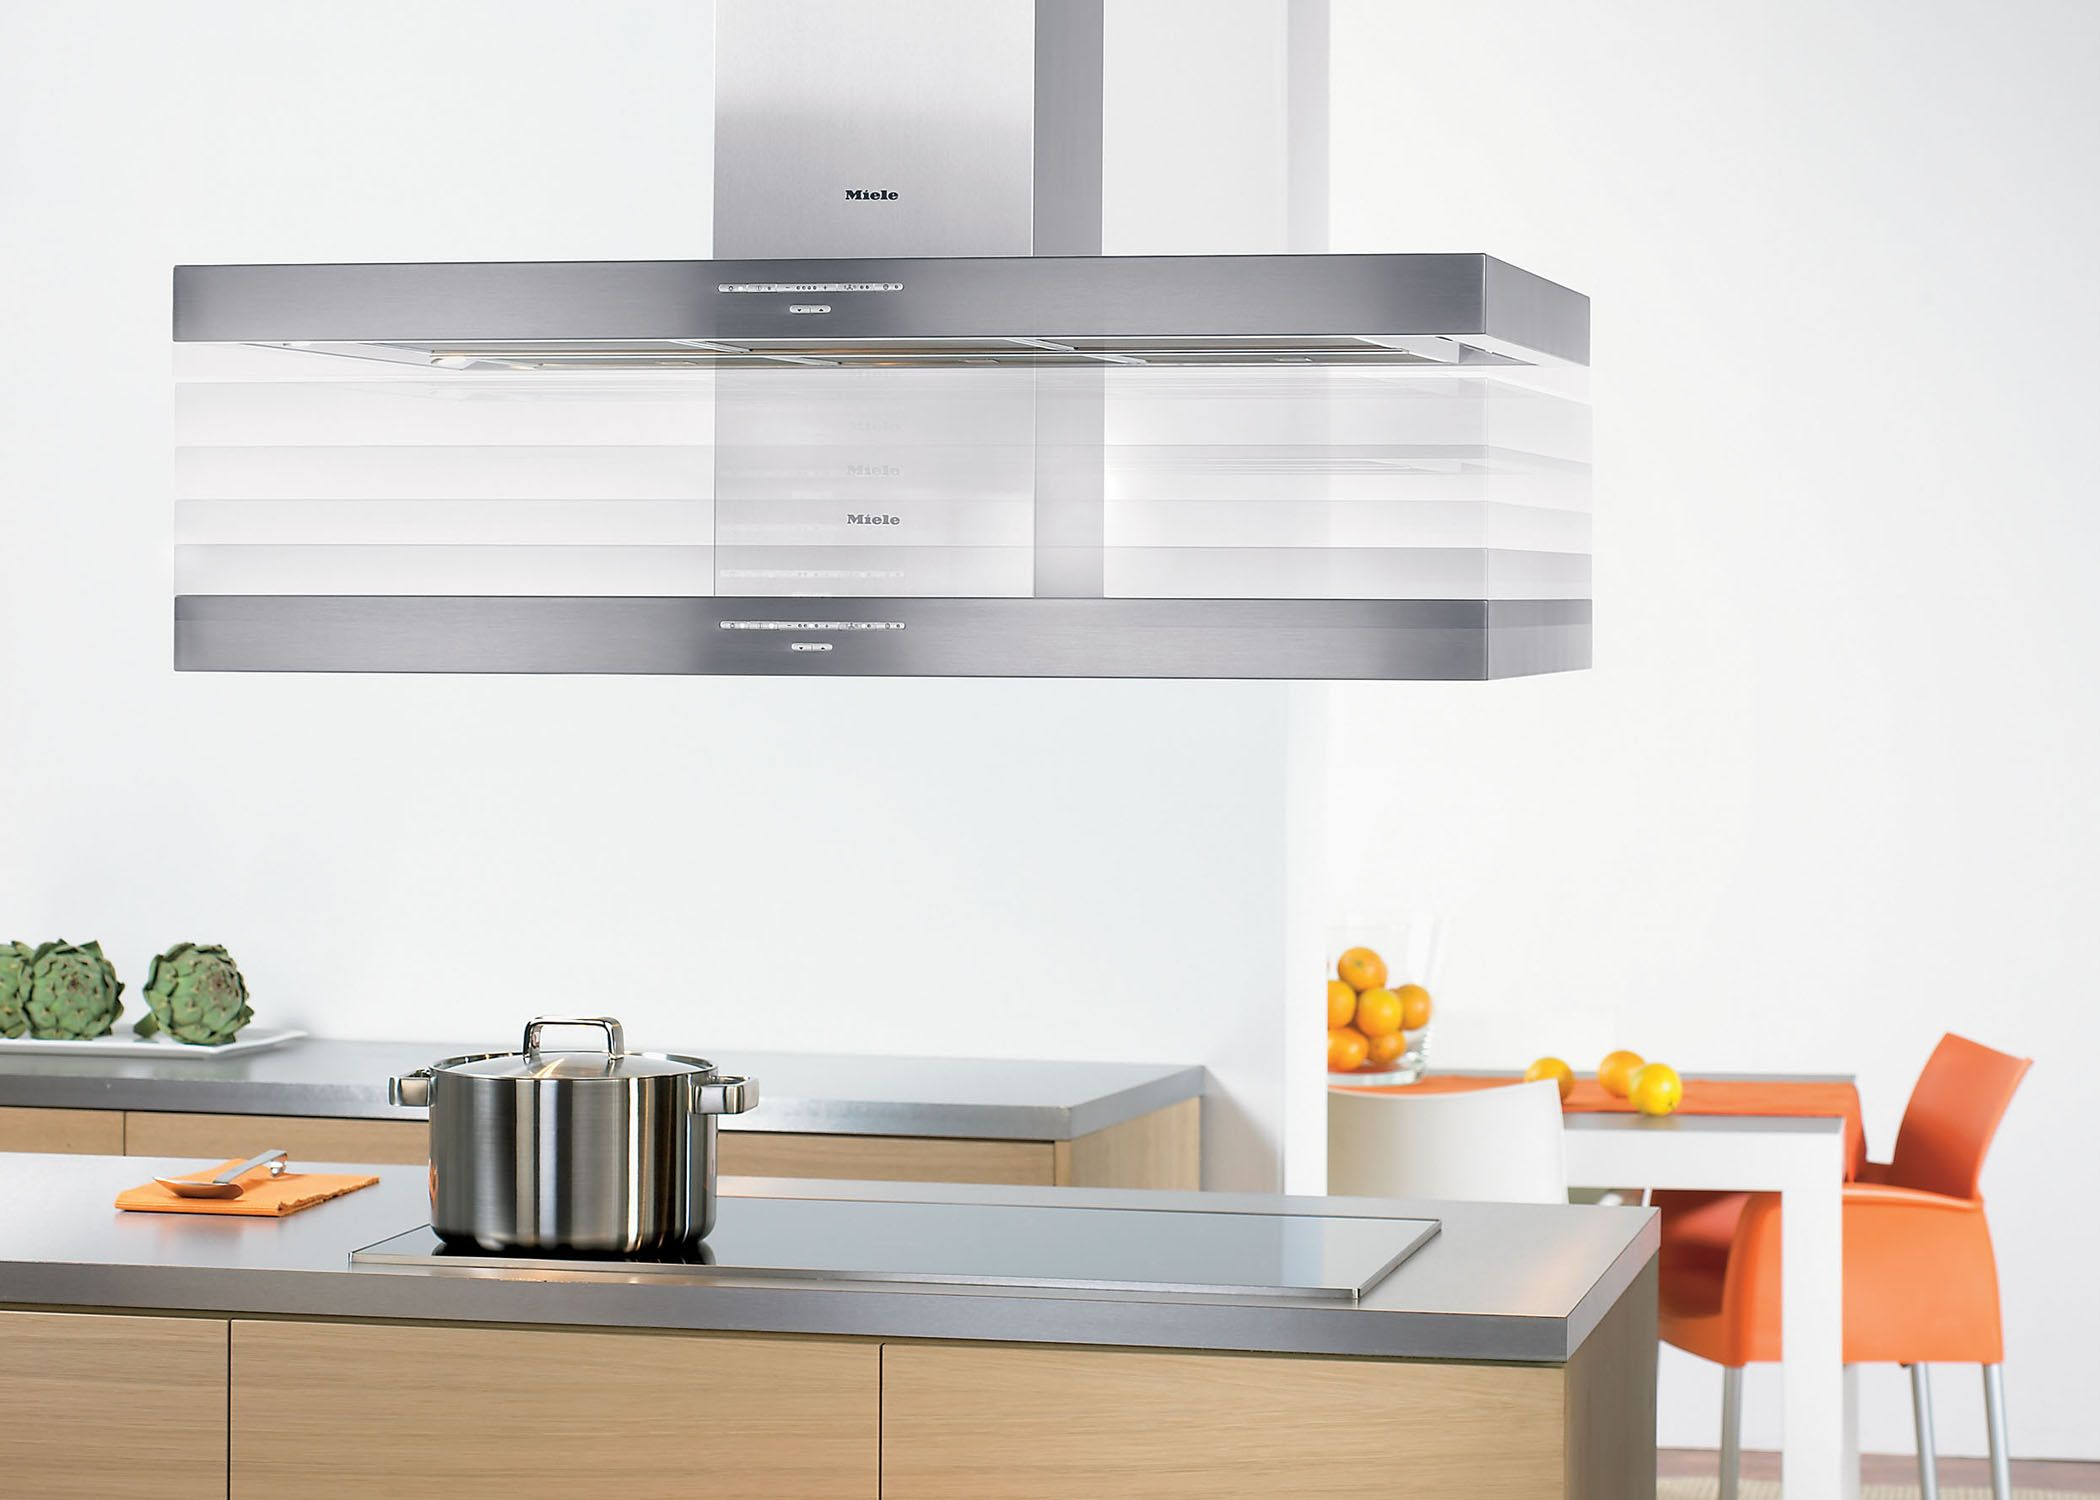 Kitchen Island Range Hoods Pin By Jfry Craig On Kitchen | Kitchen Island Ventilation